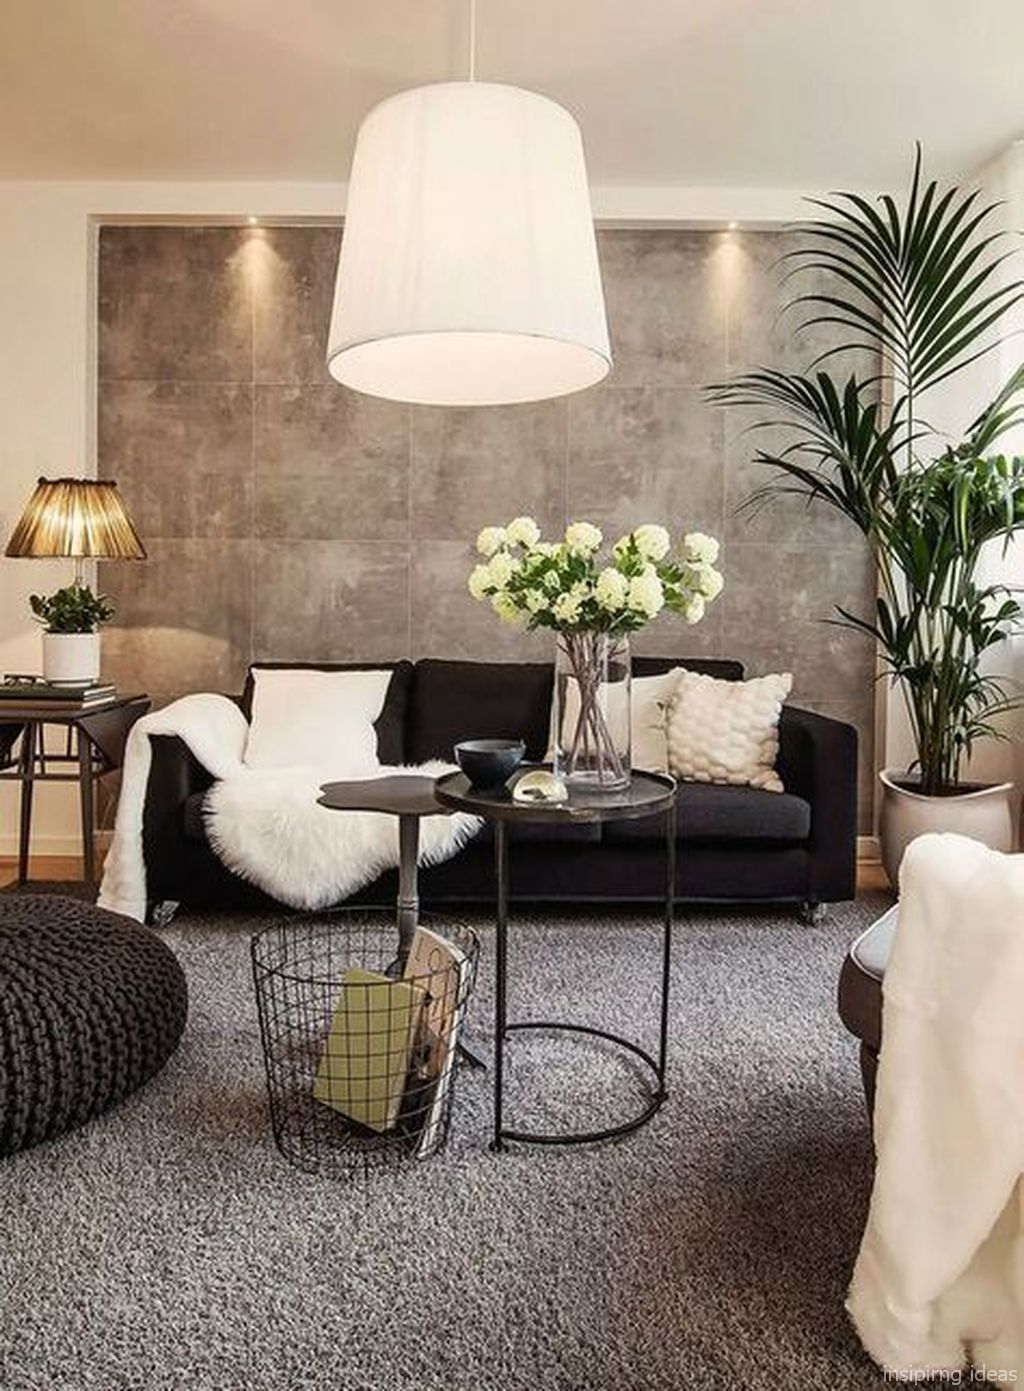 Adorable 76 Chic Modern Apartment Decorating Ideas Https Roomaholic Com 5096 76 Chic Mode Small Living Rooms Black And White Living Room Living Room Interior